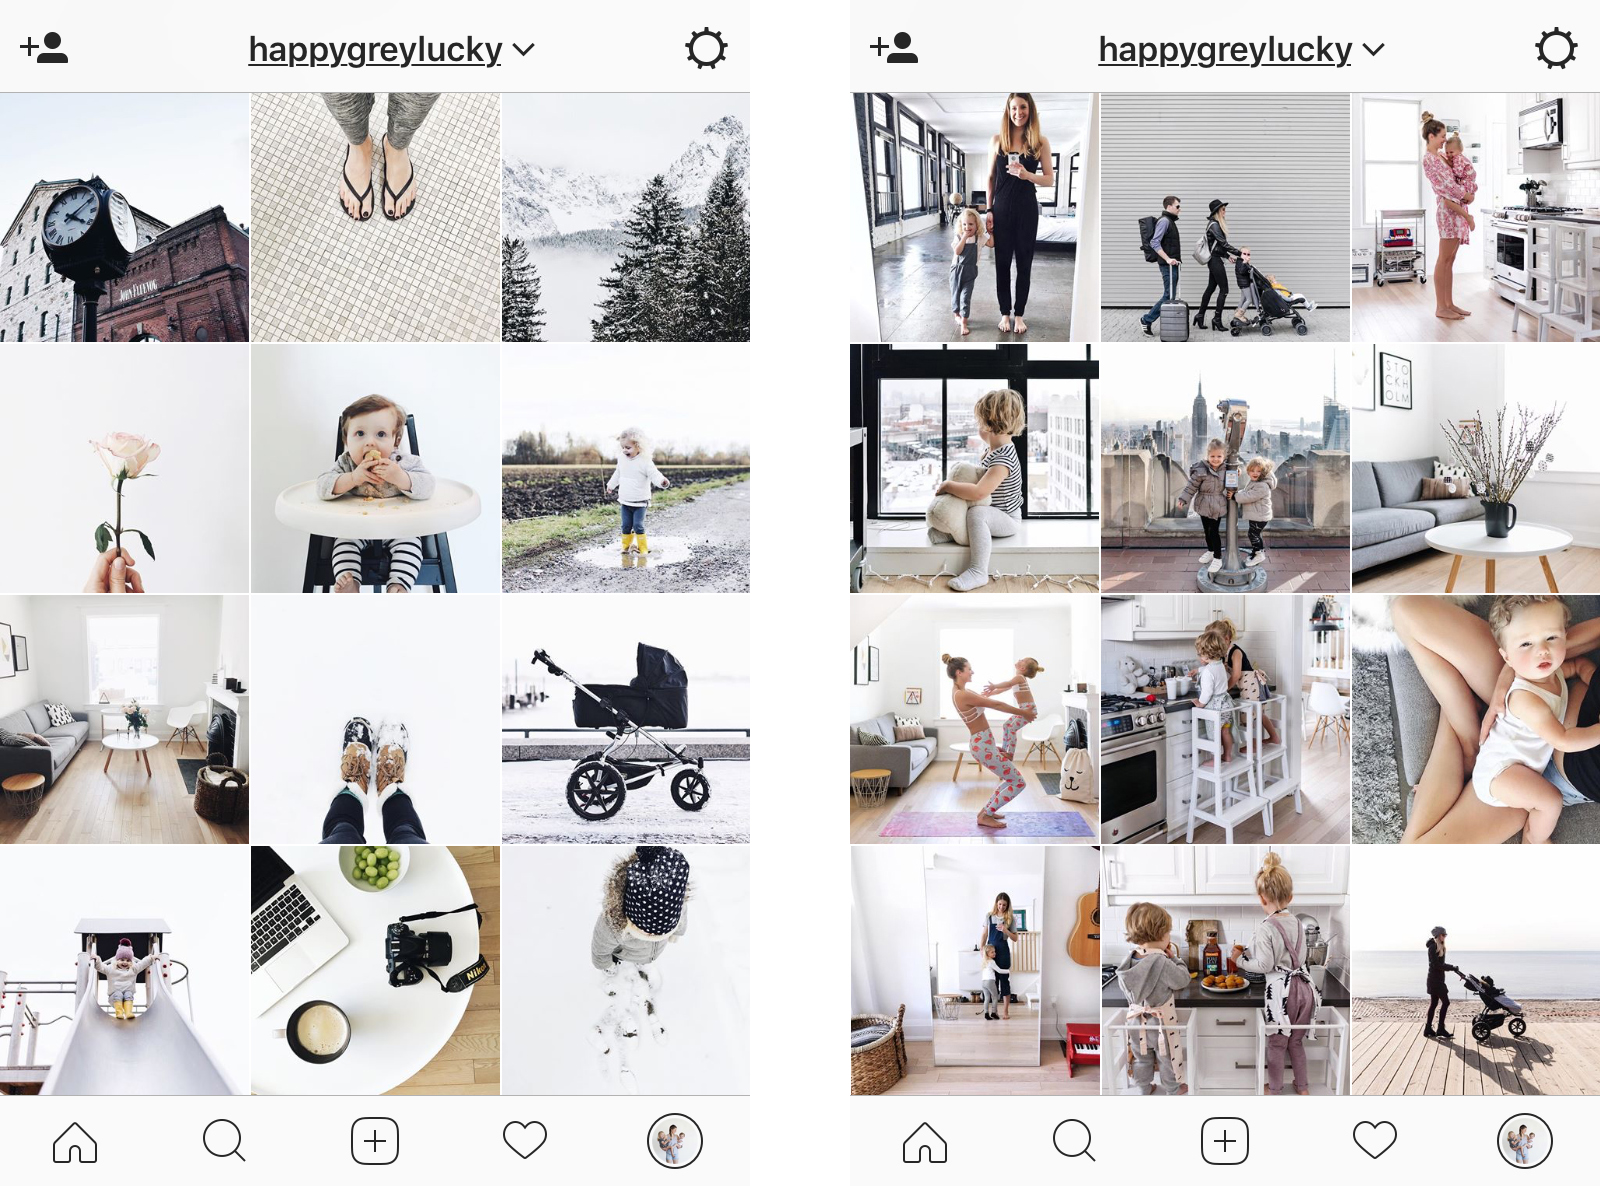 How to grow your Instagram quickly and organically | Happy Grey Lucky